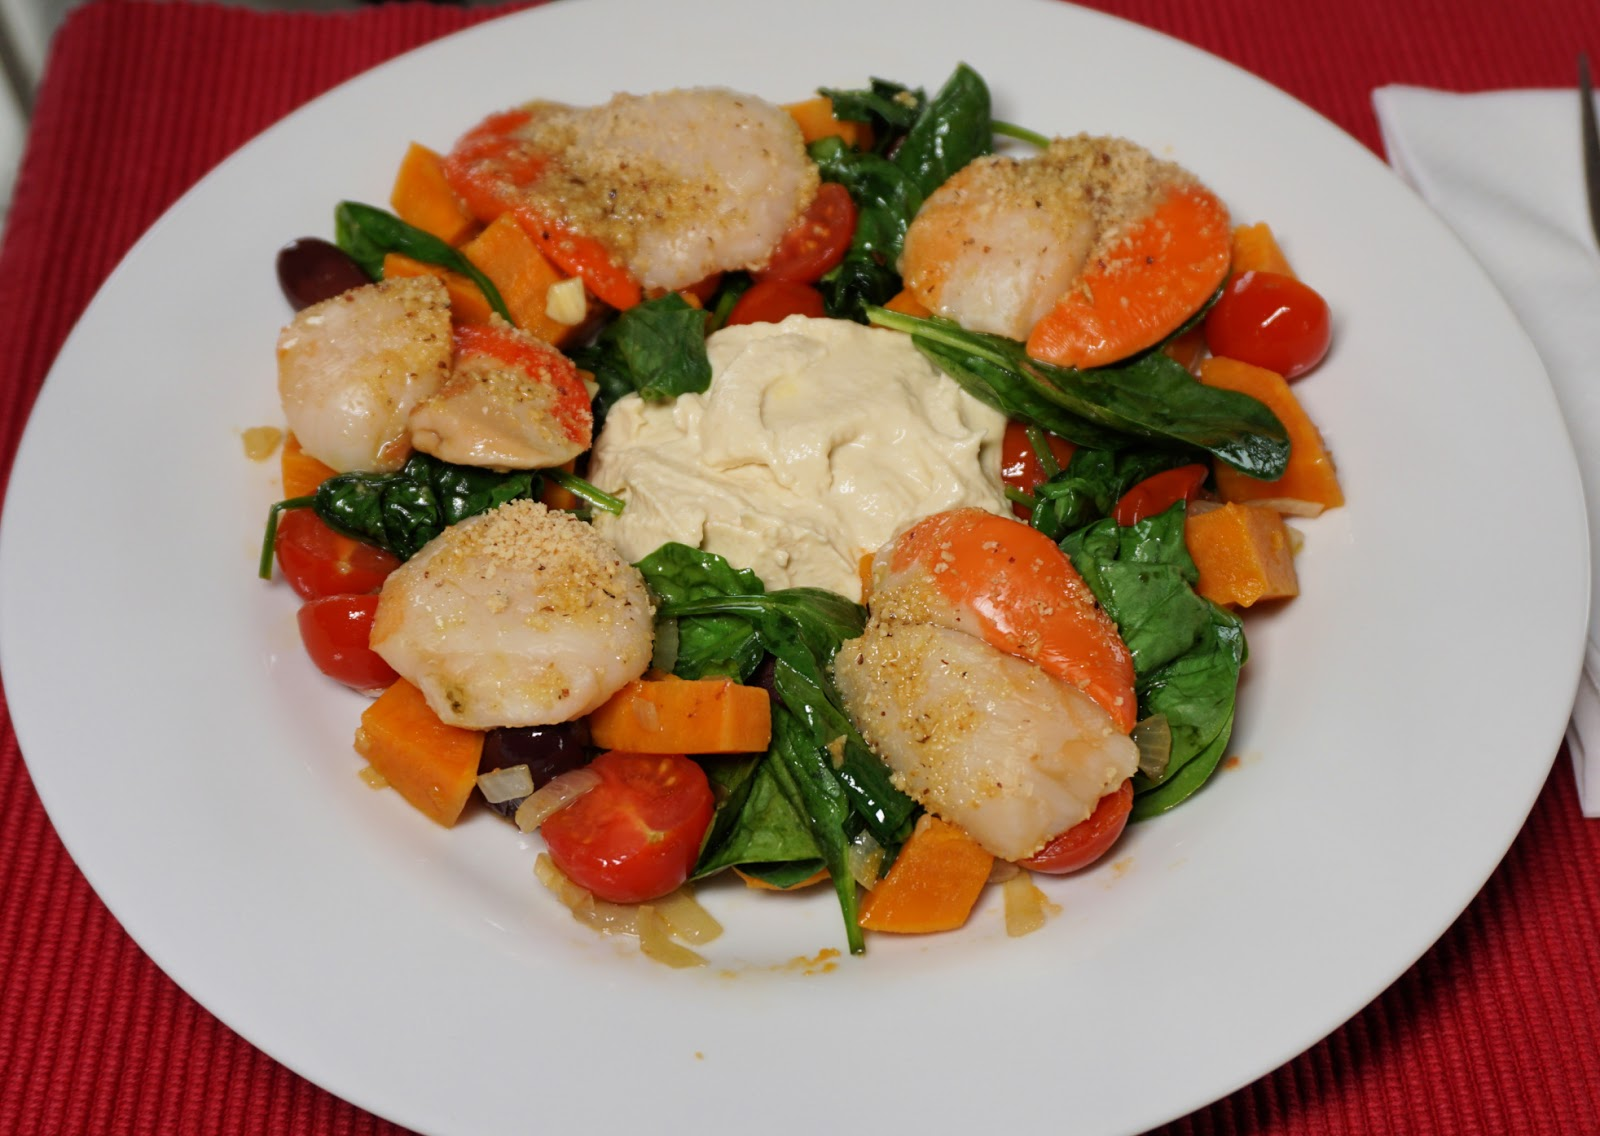 Hummus and scallops on a vegetable bed